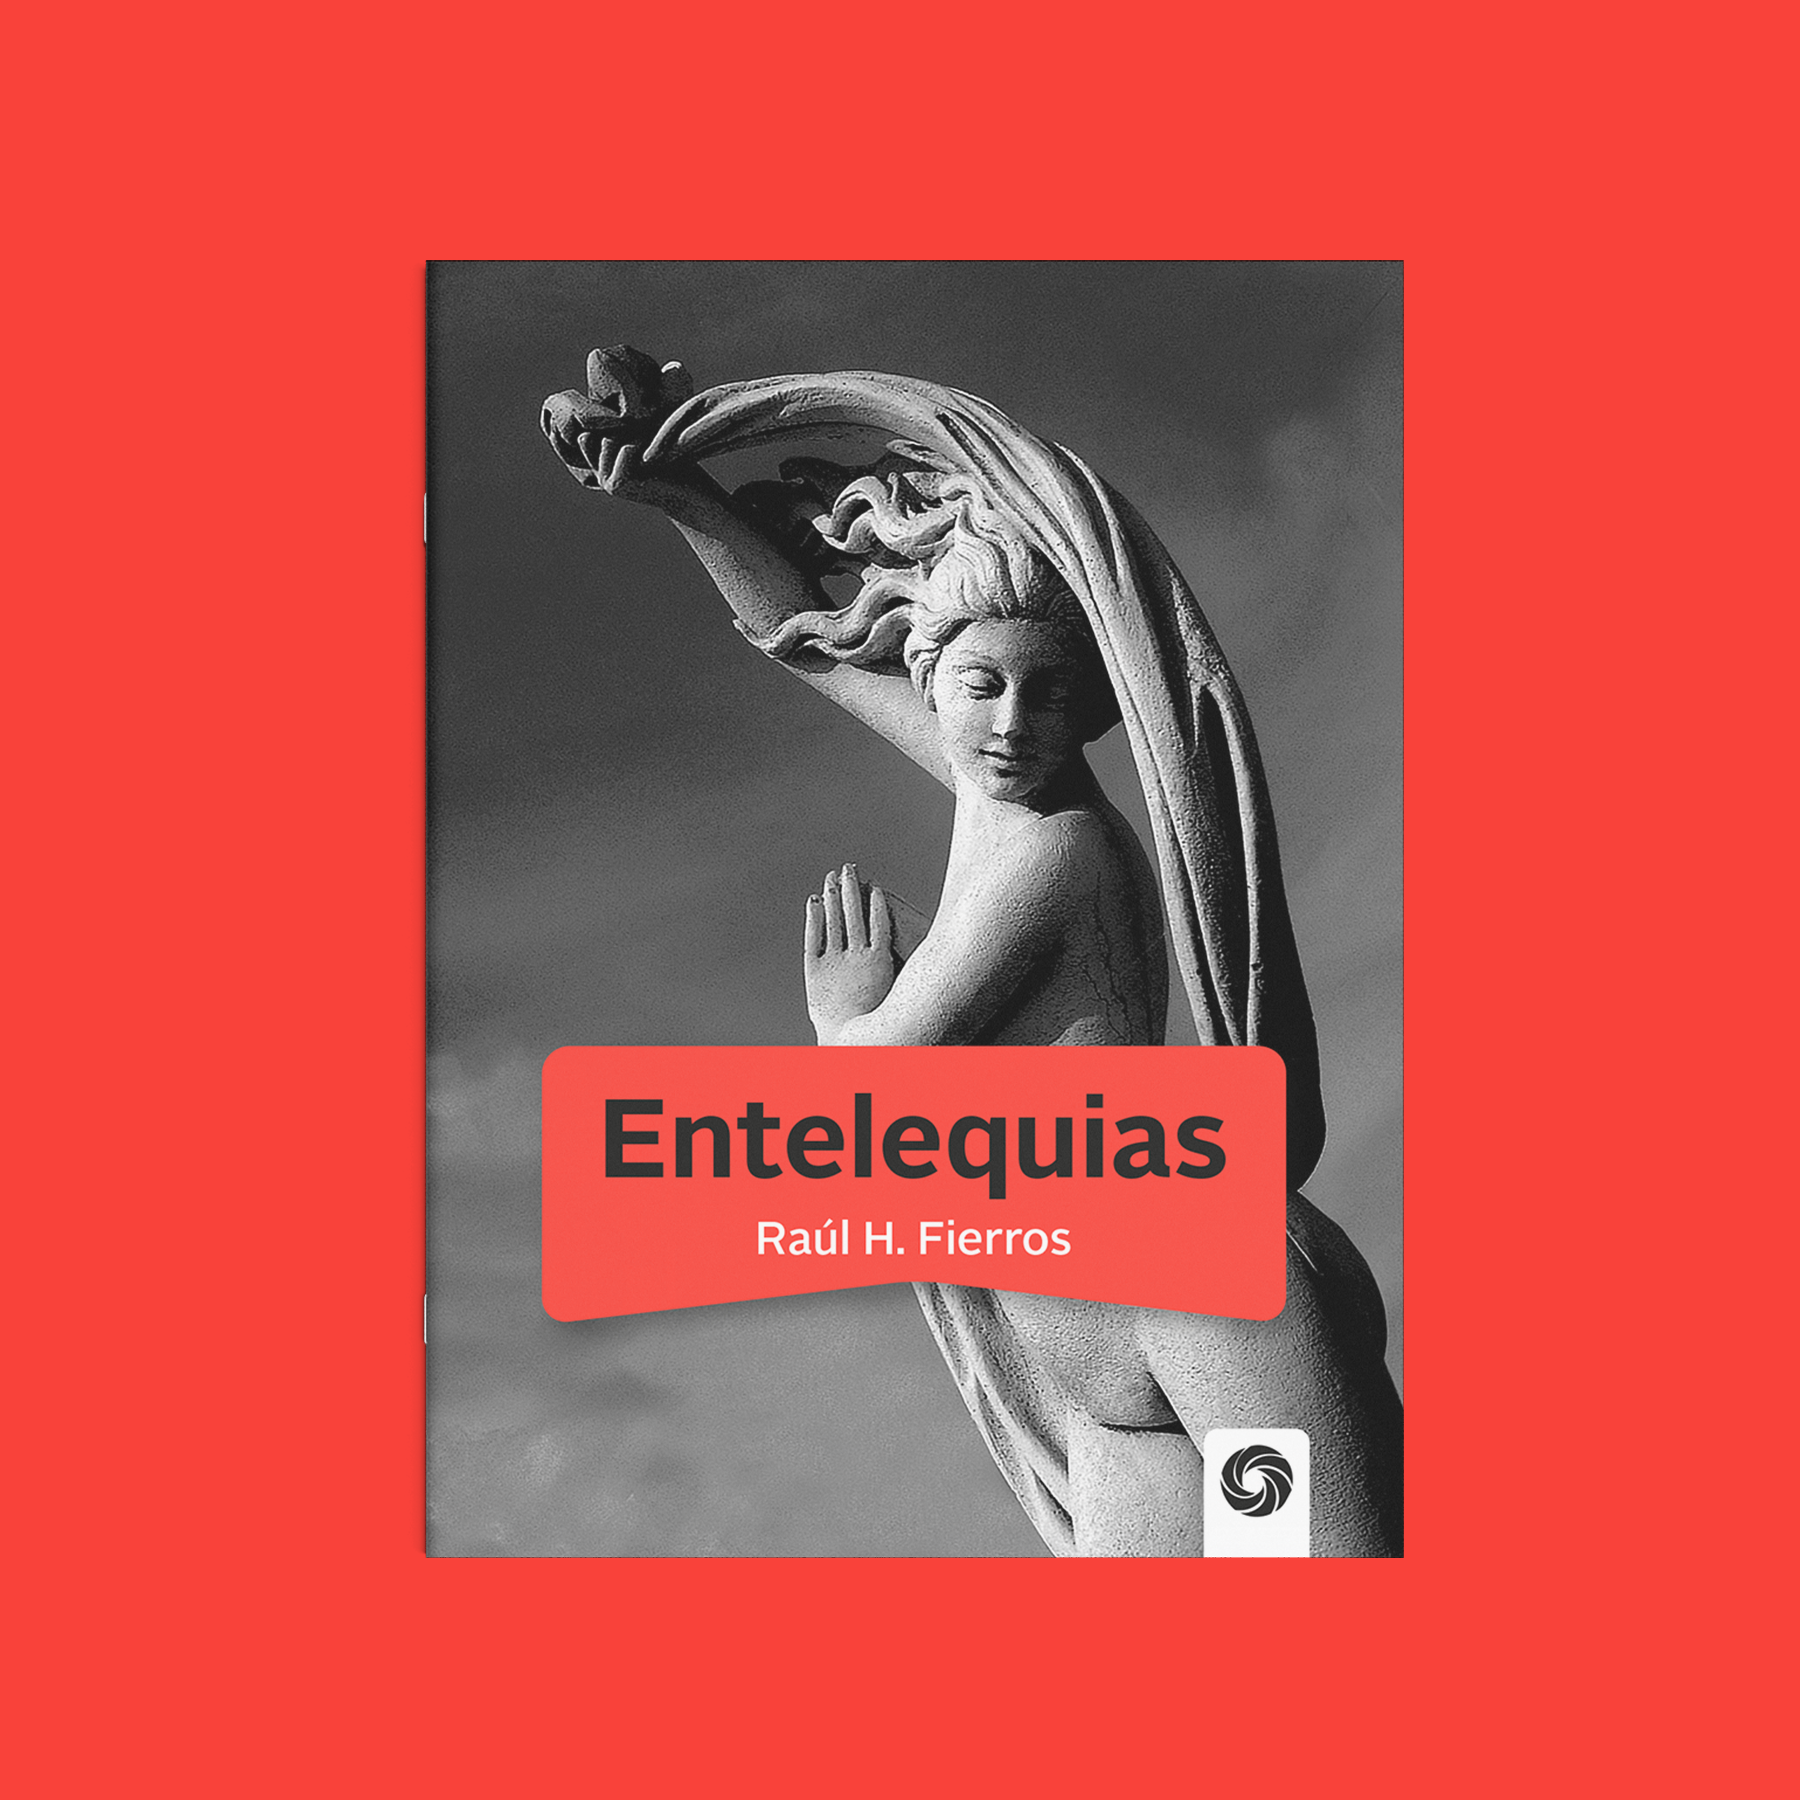 Entelequias